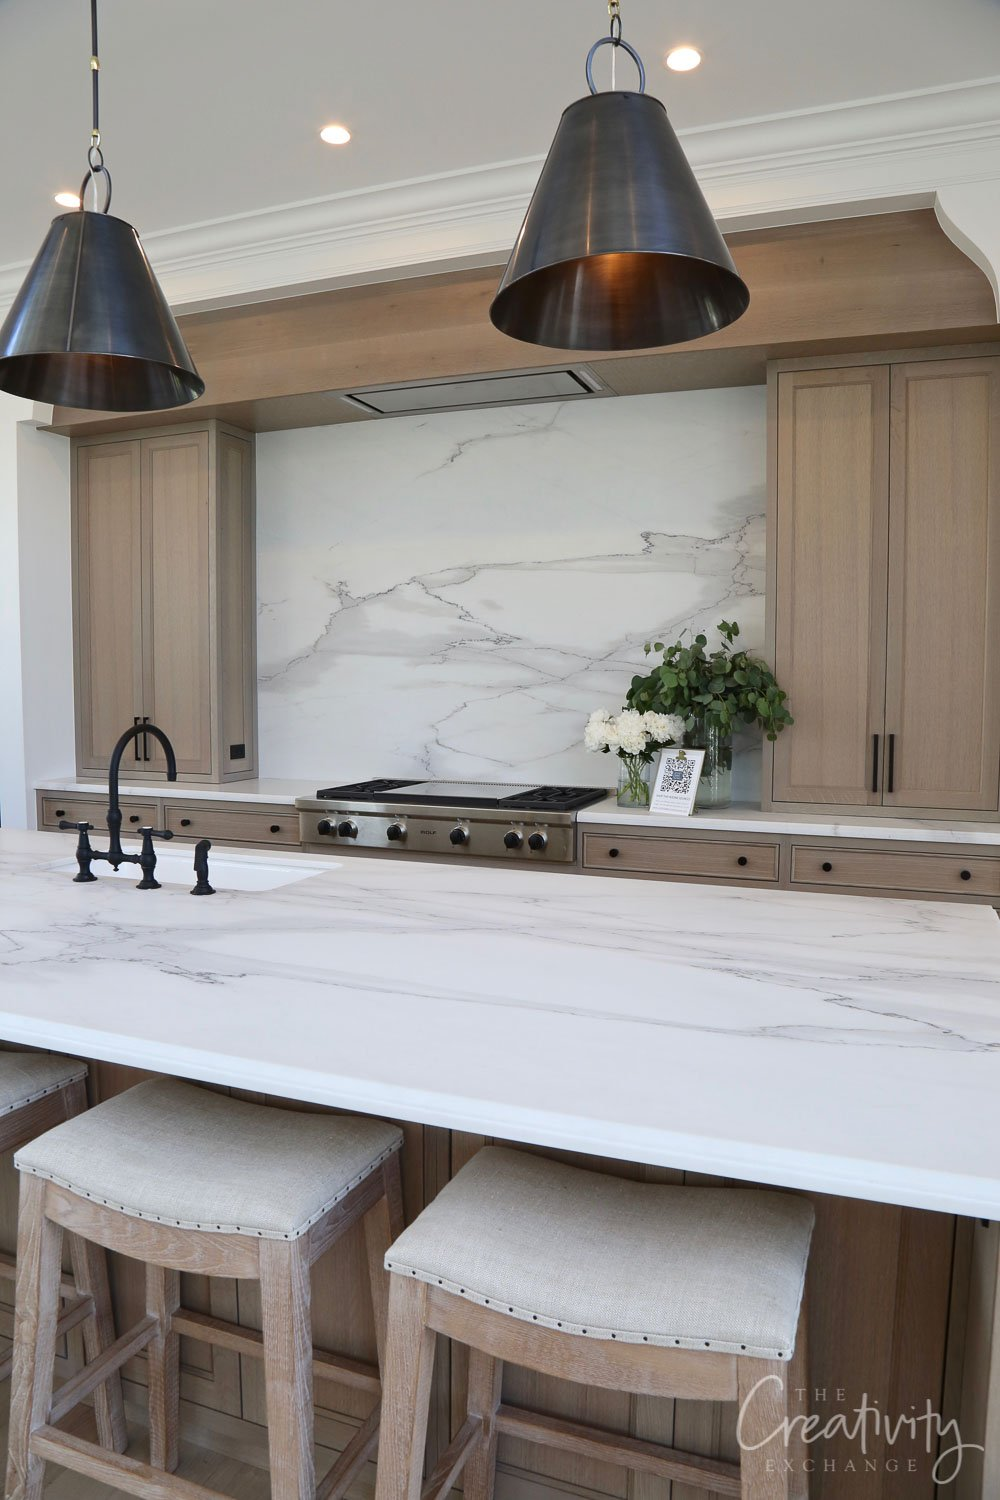 Kitchen with solid slab marble countertops and backsplash